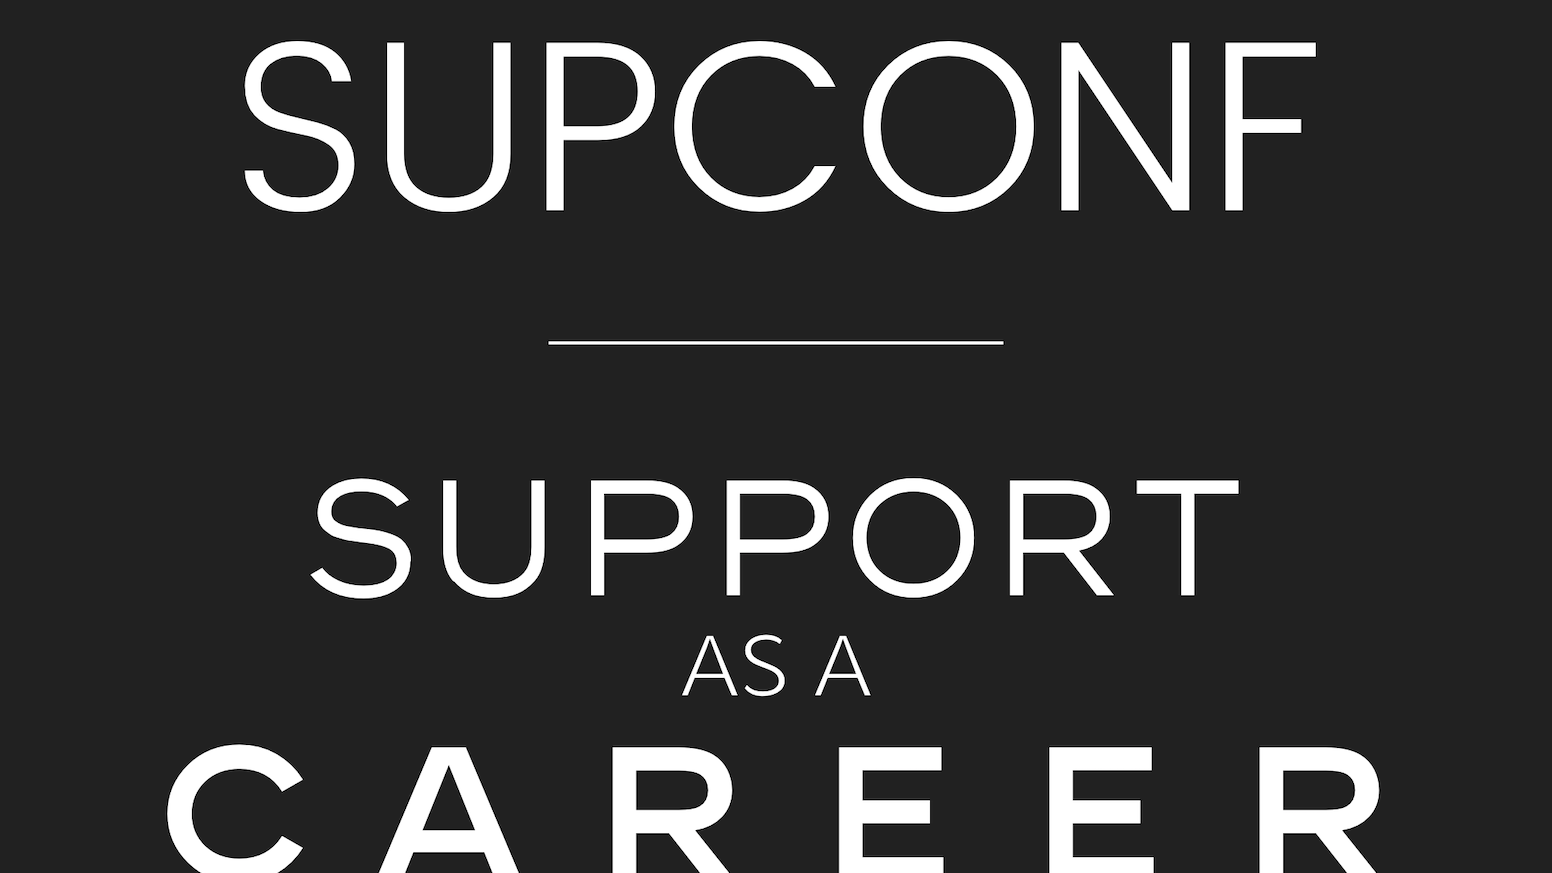 The conference for career-minded support professionals